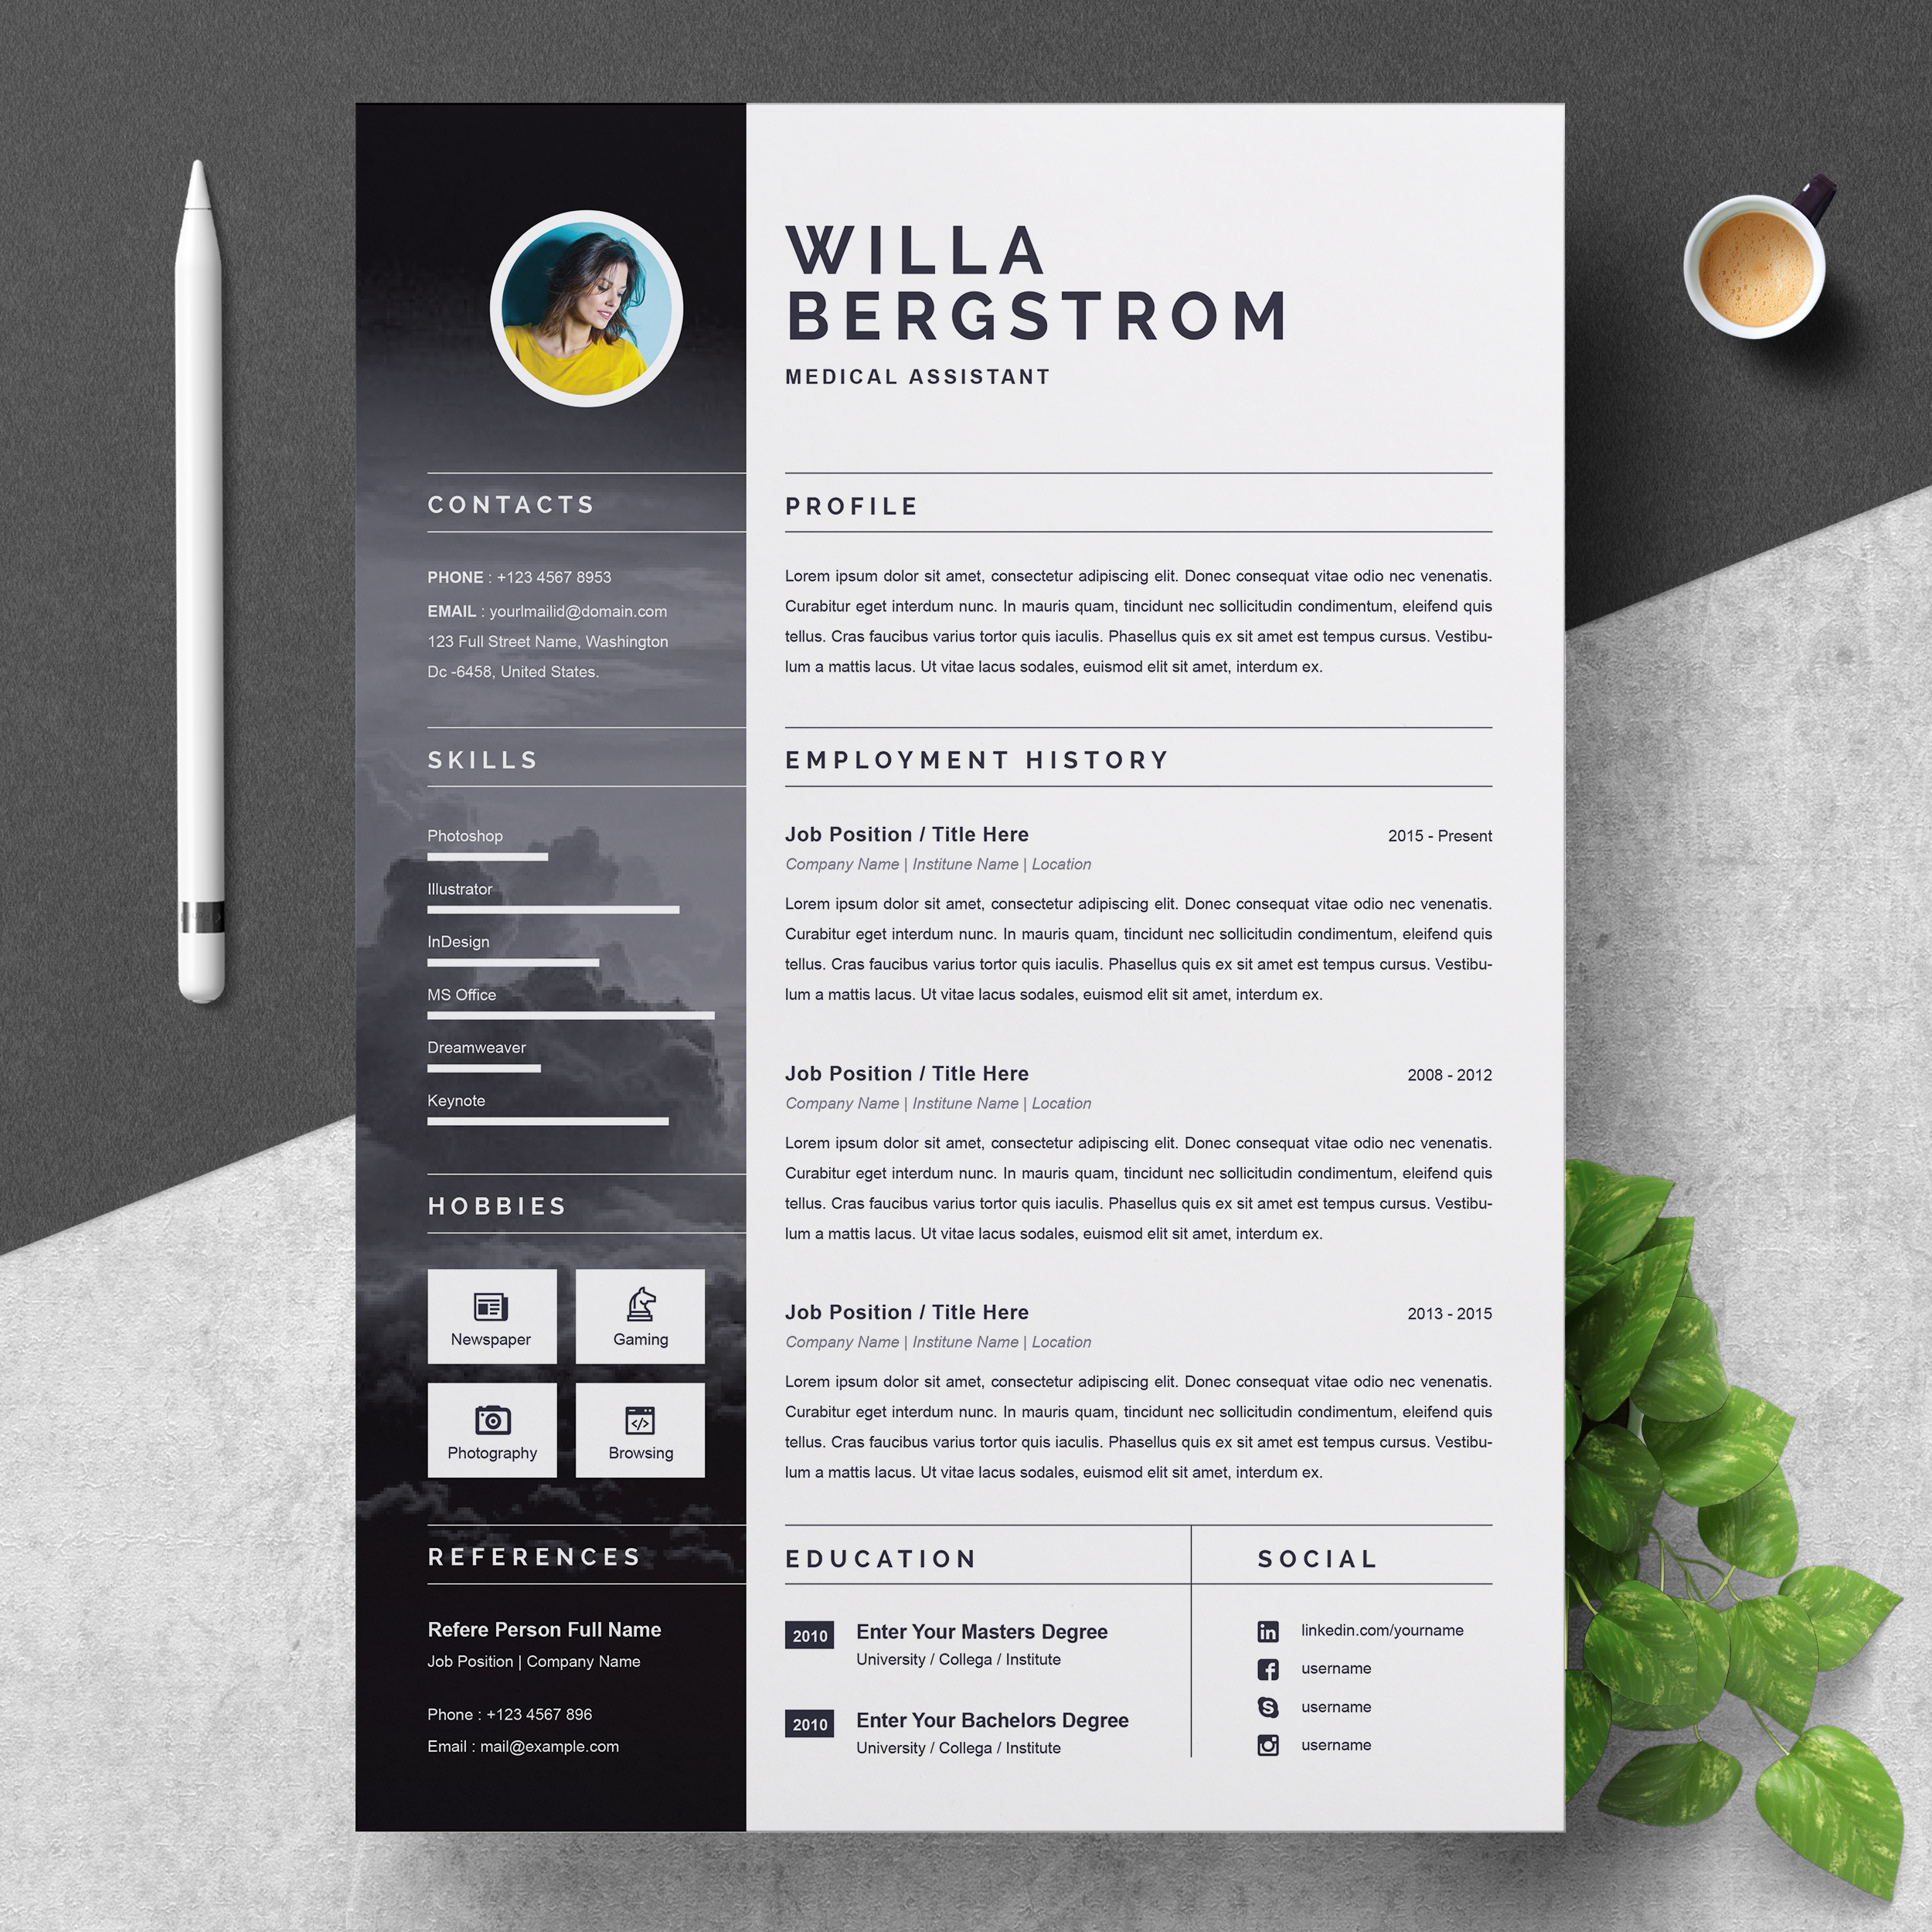 Free professional medical resume templates costing analyst resume sample